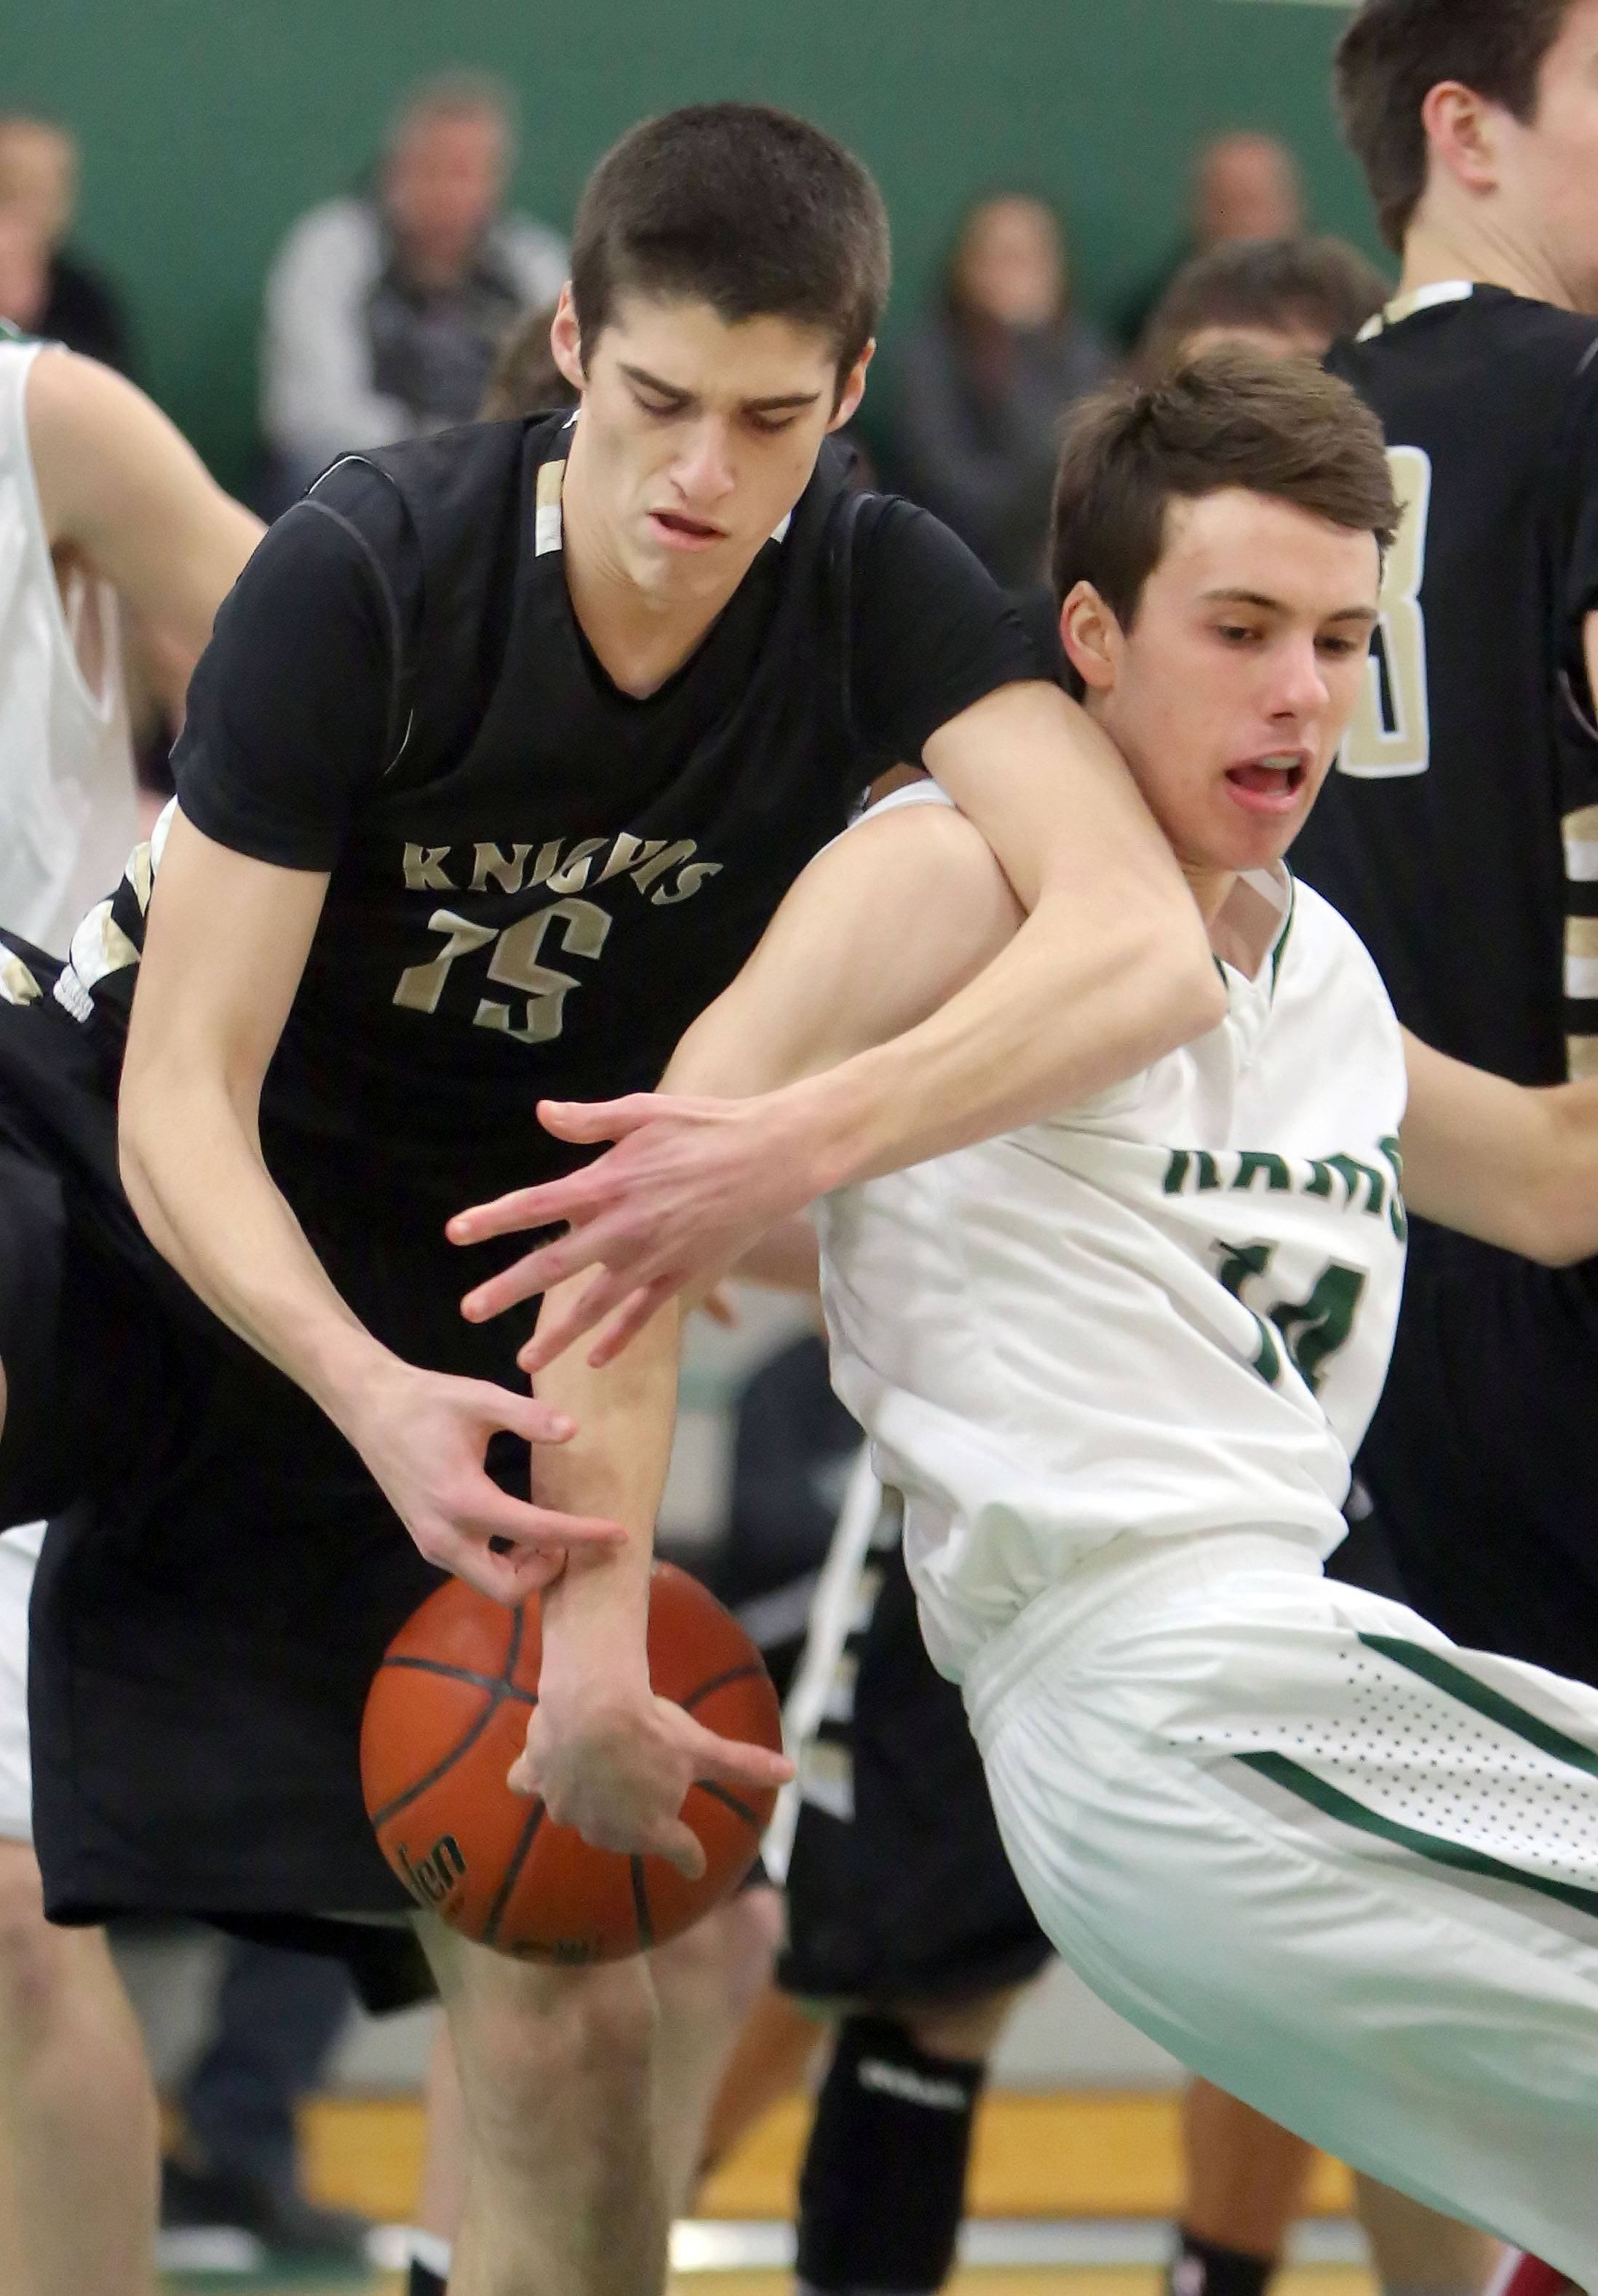 Grayslake North's Dom DiProva, left, and Grayslake Central's Charlie Anderson scramble for a rebound on Tuesday night at Grayslake Central.